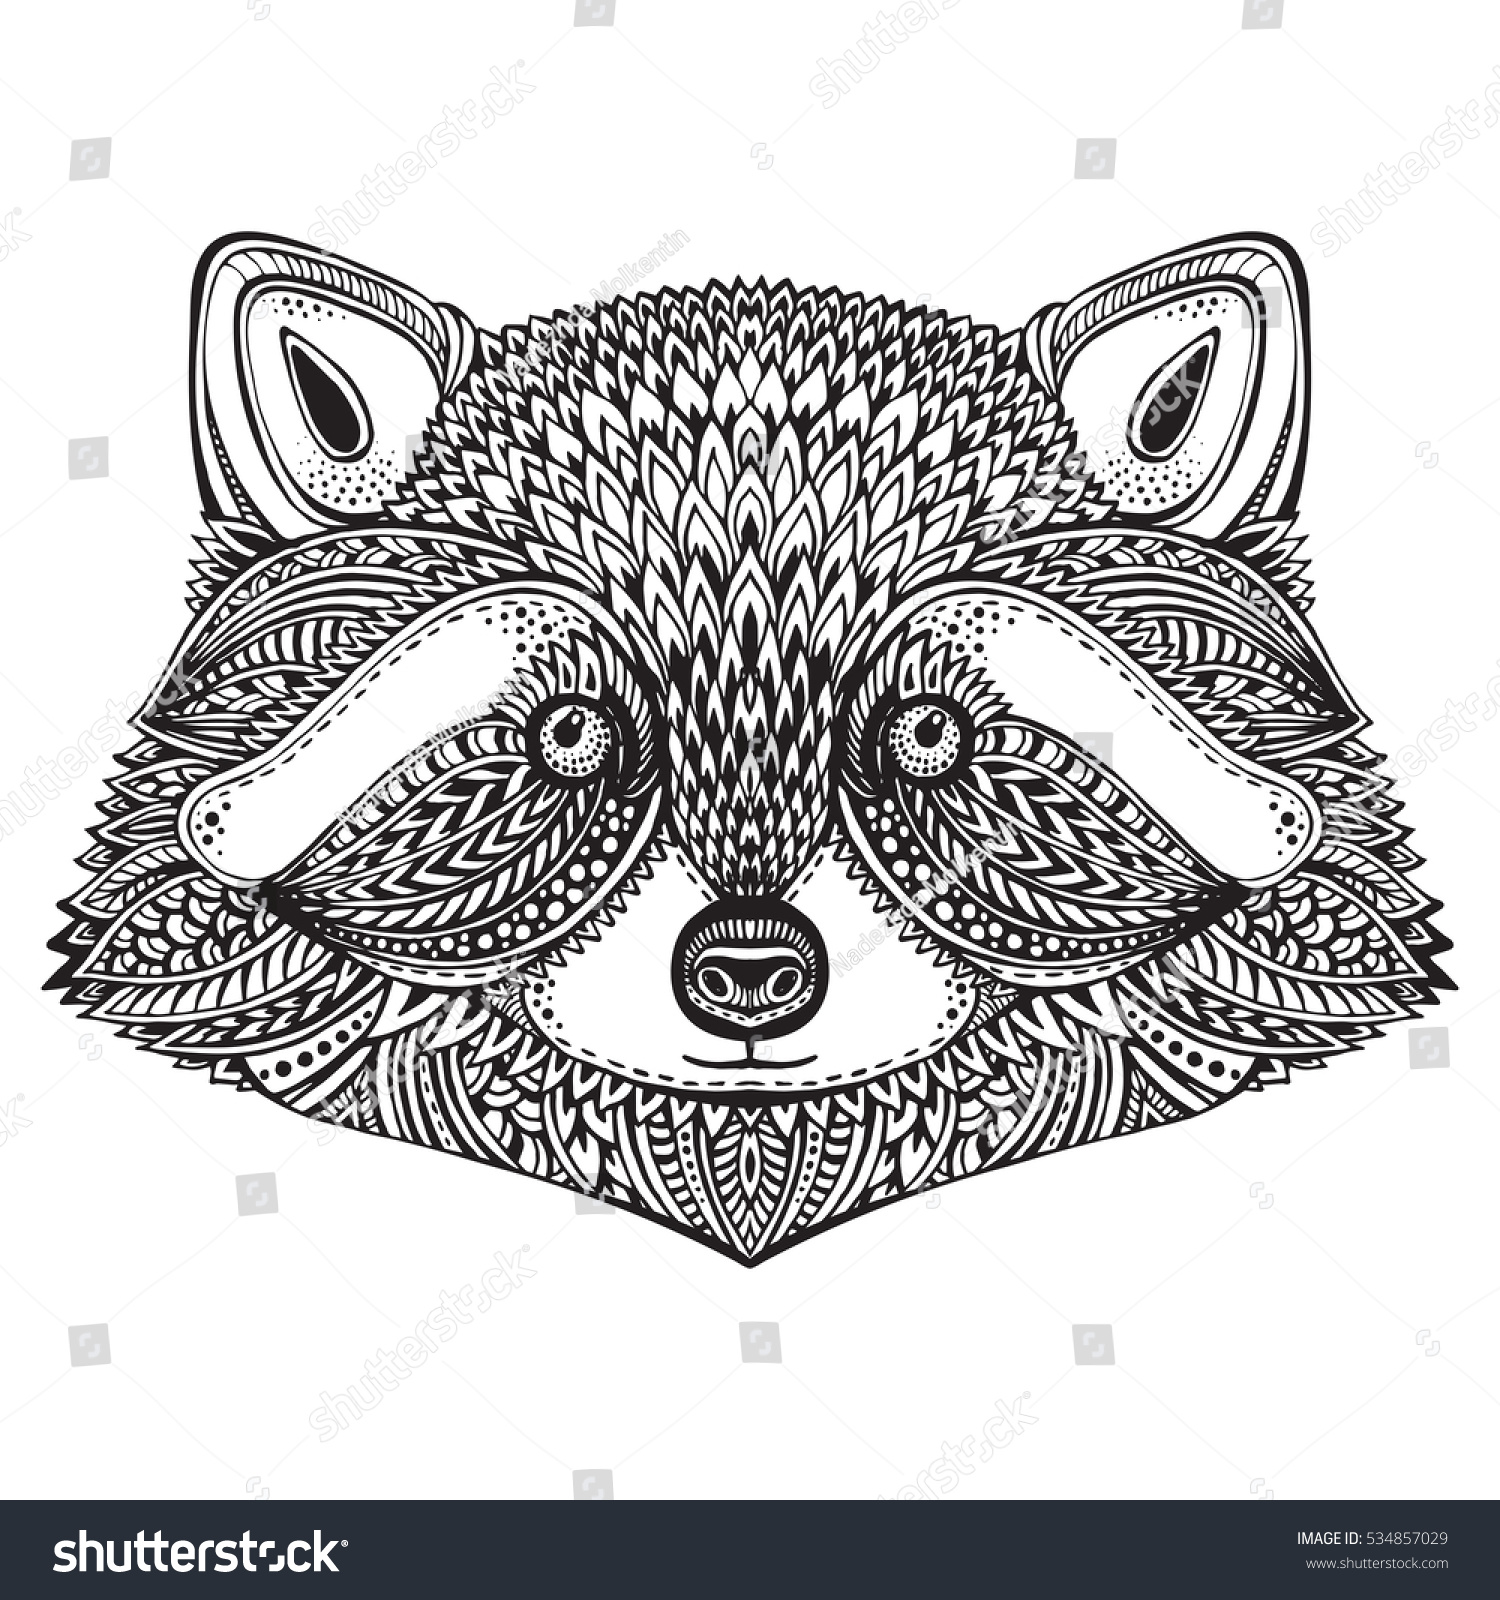 hand drawn raccoon face doodle ornate stock vector 534857029